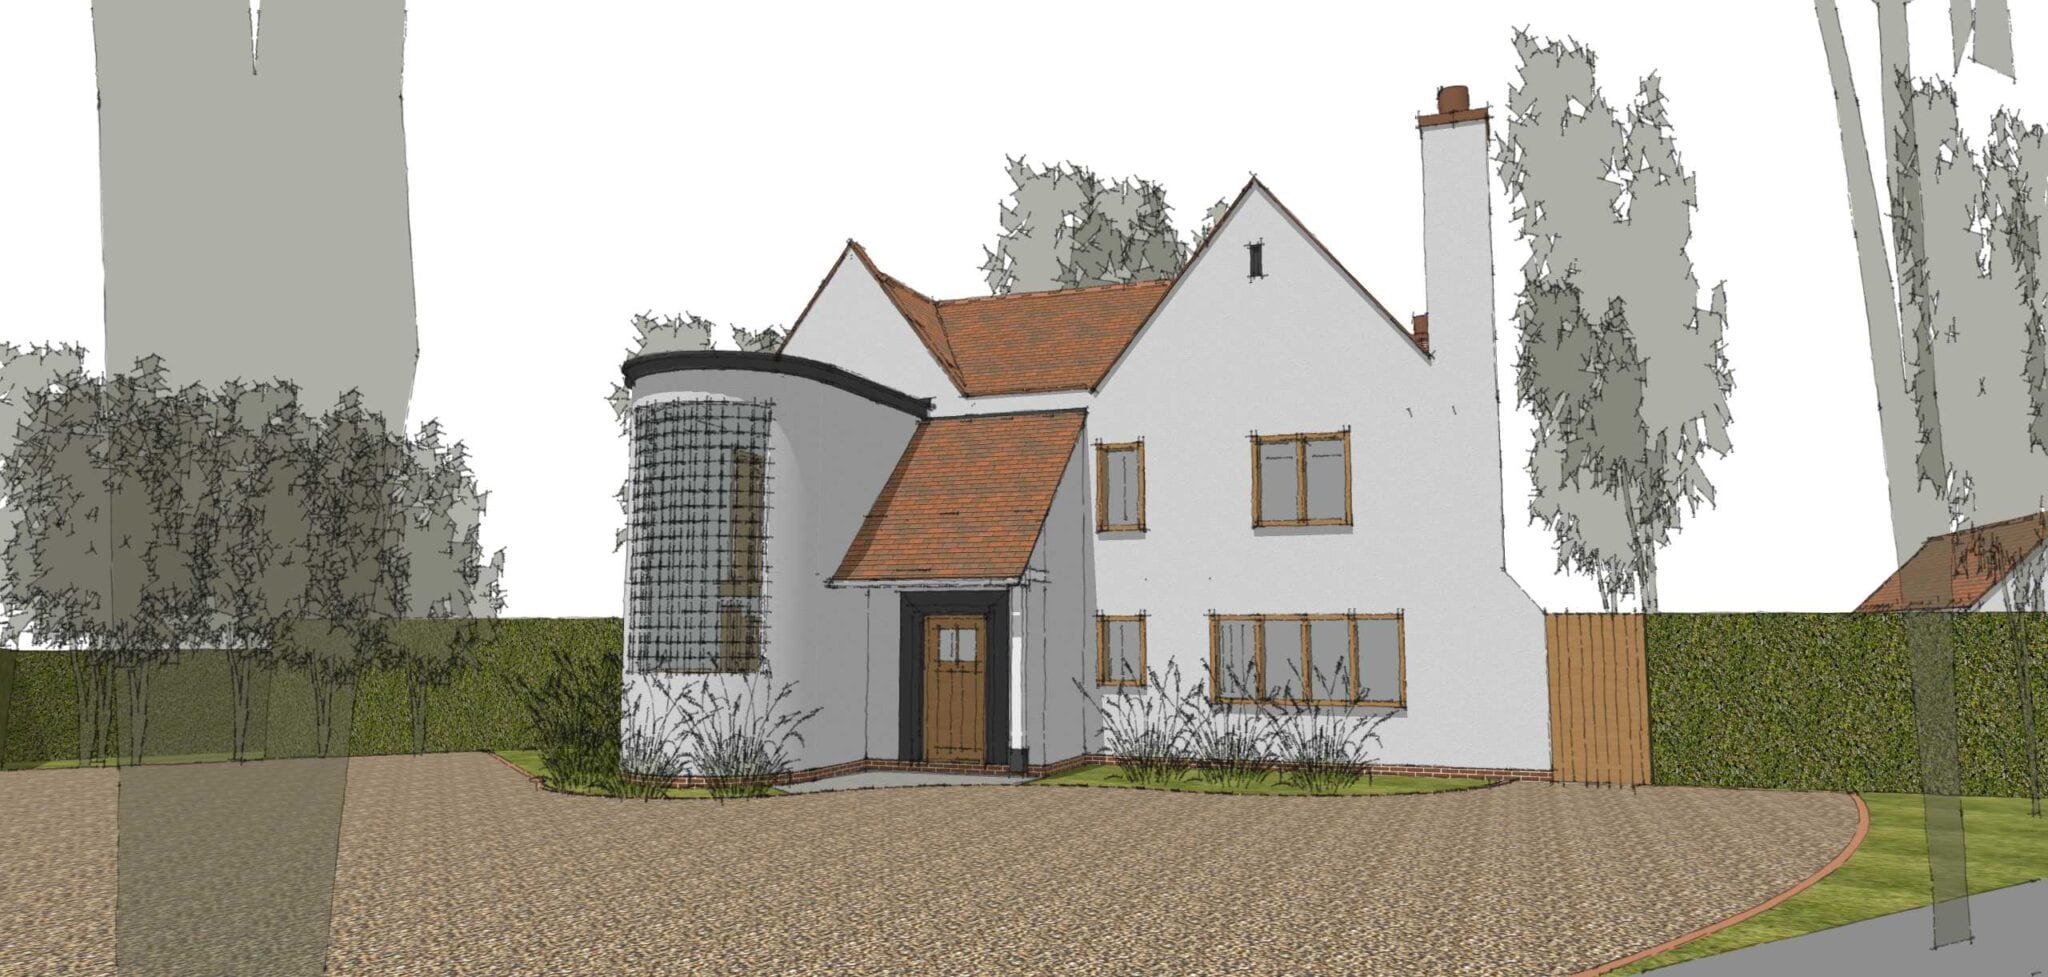 Planning Approval for New Build Arts & Crafts Inspired House in Stamford…